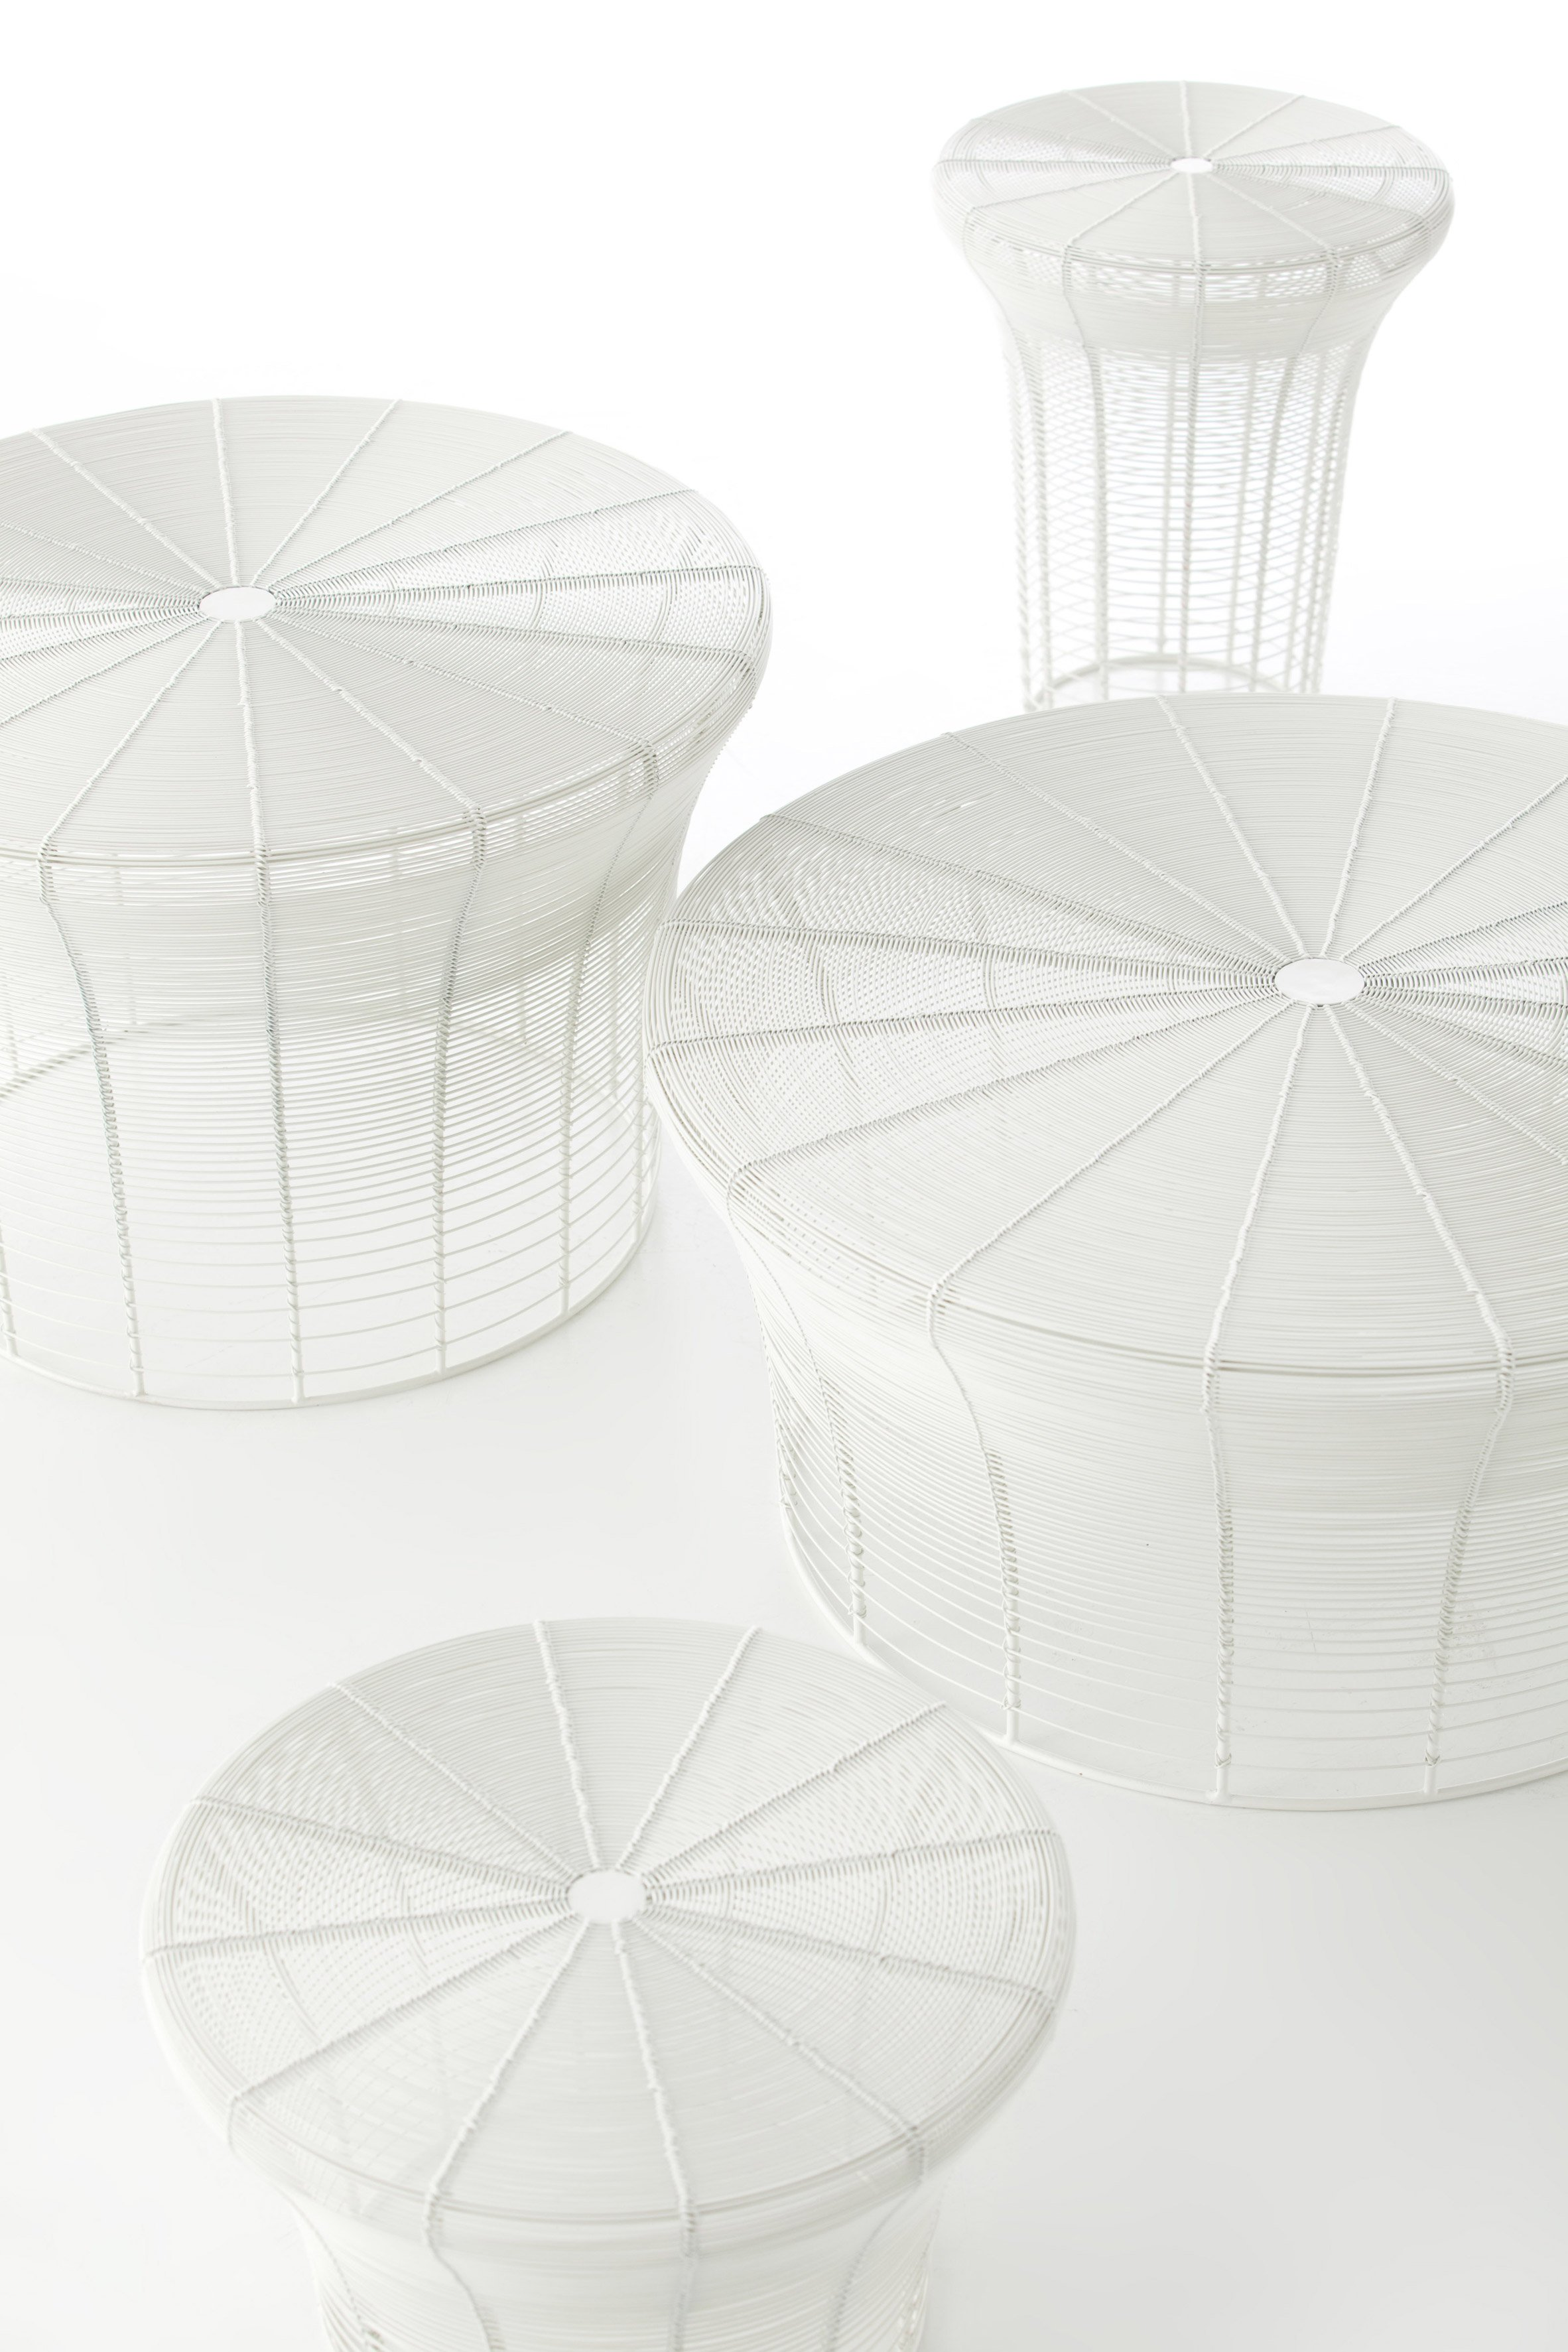 Competition: win an Aram stool designed by Nendo for GAN